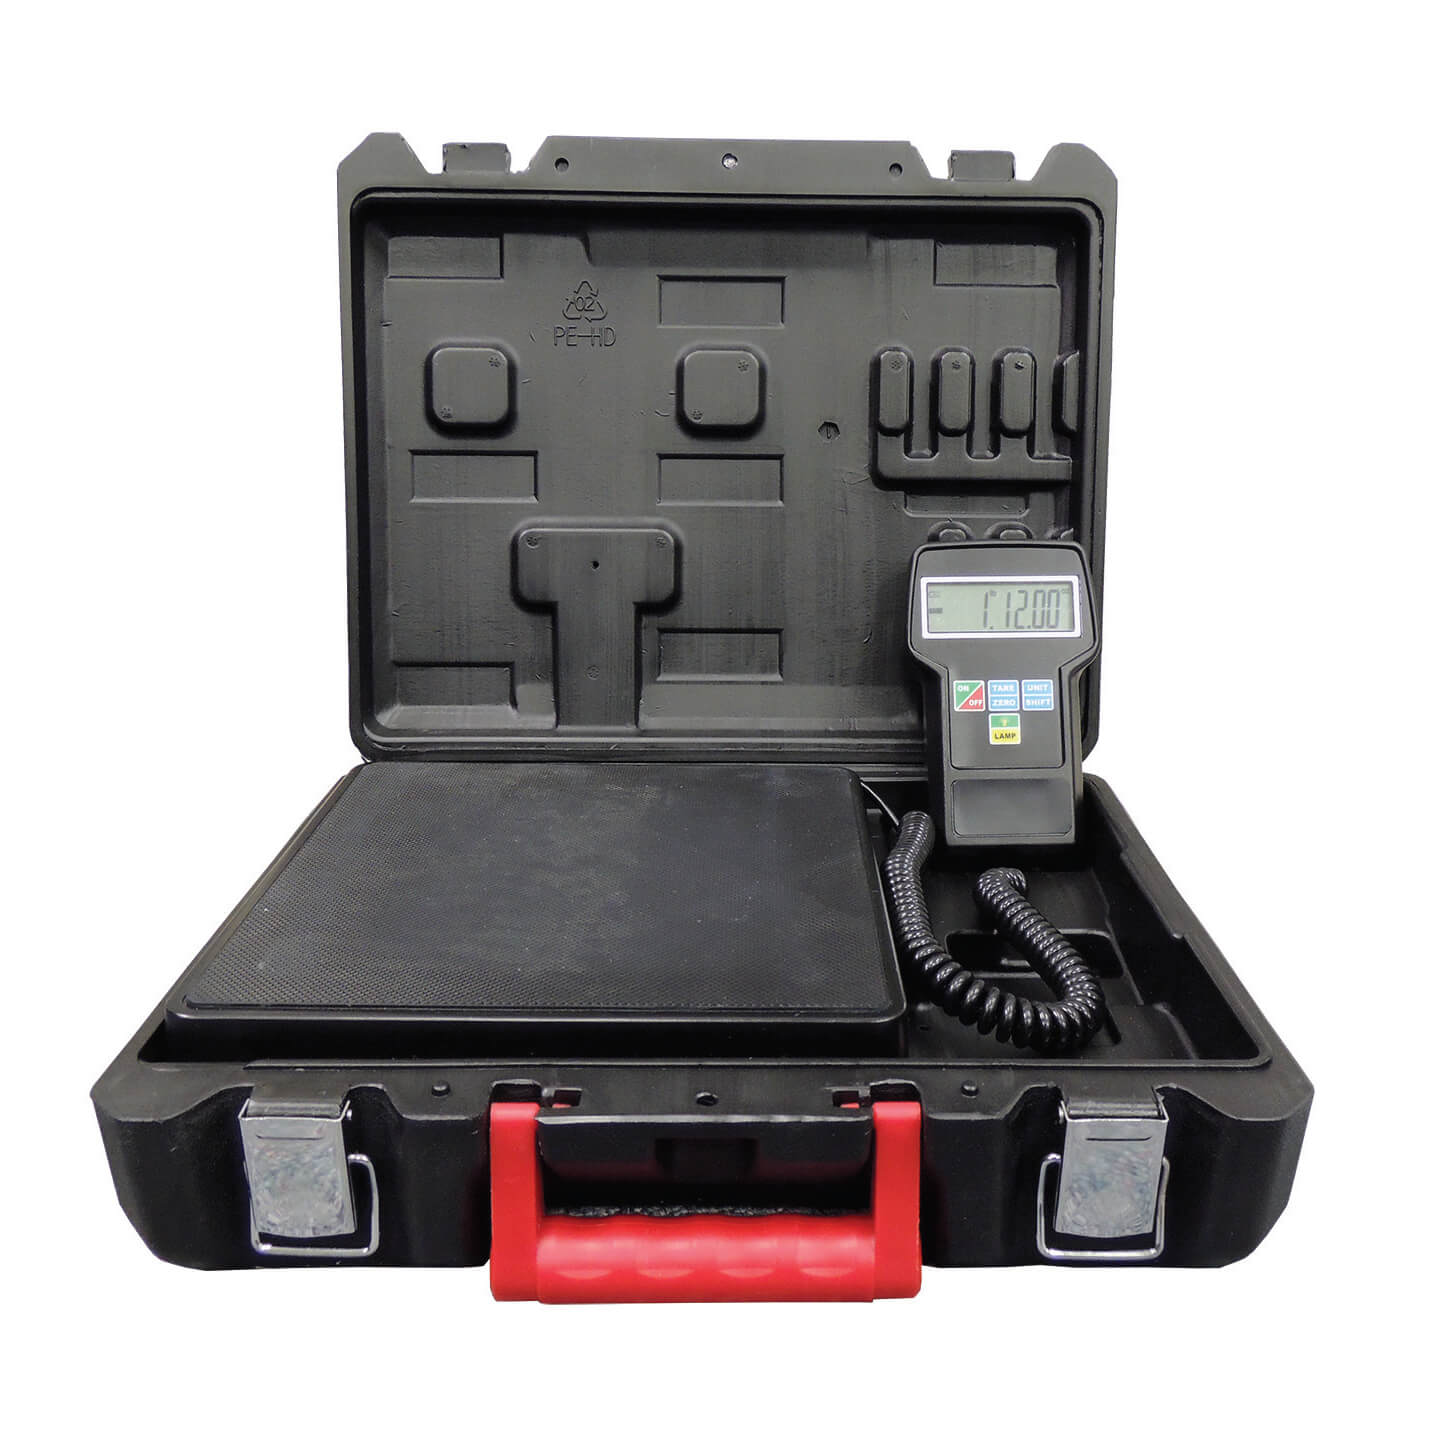 Supco RCS220 HVAC Refrigerant Charging Scale with Case